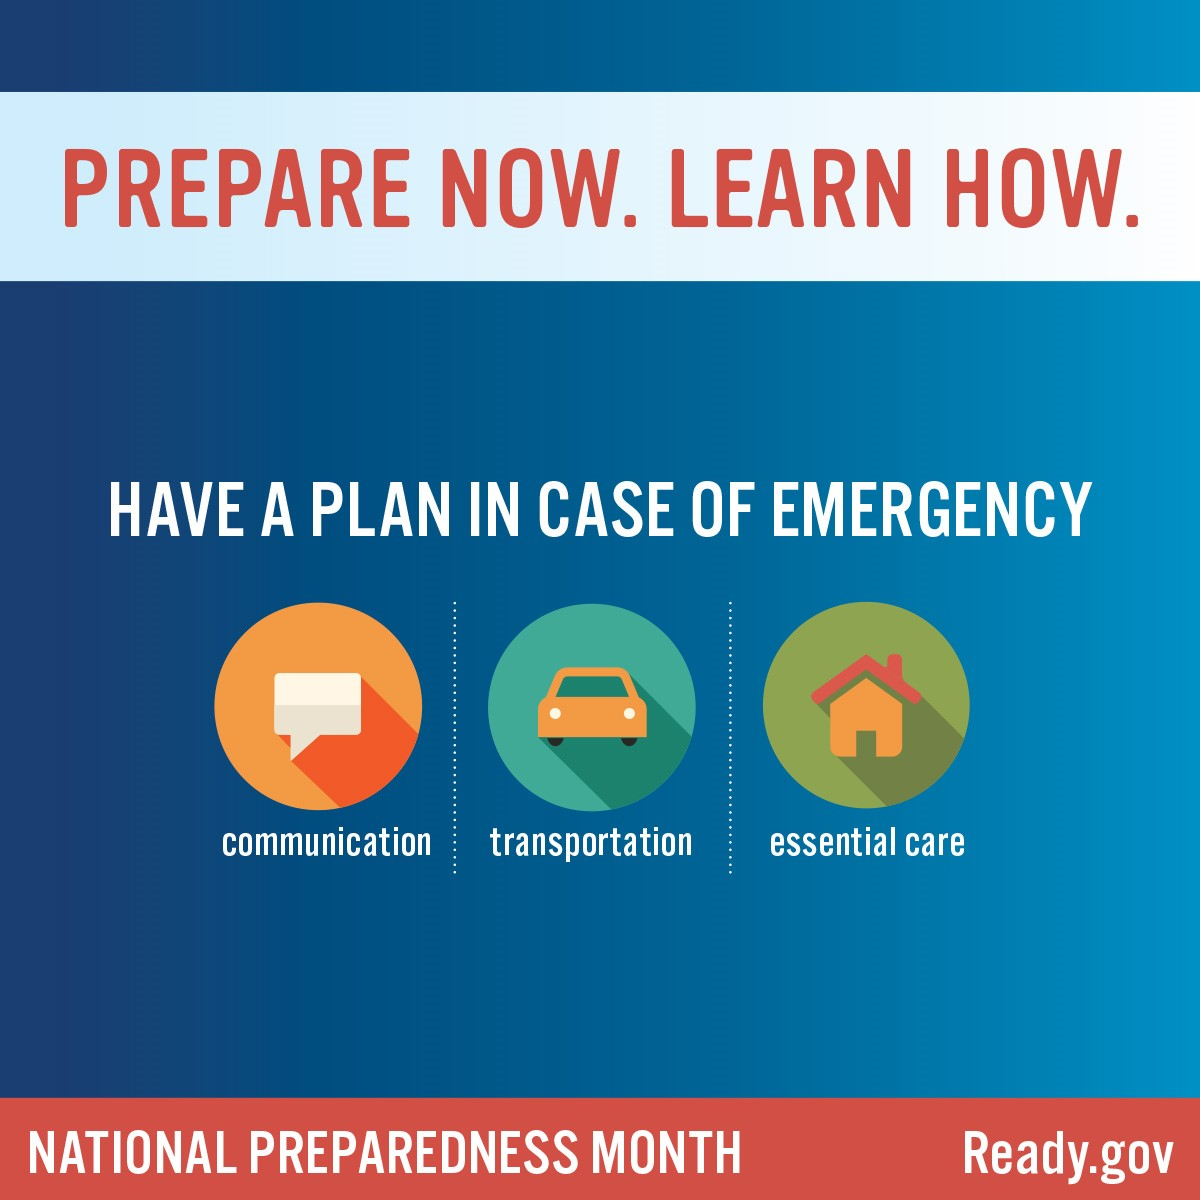 Have a plan in case of emergency: communication, transportation, and essential care